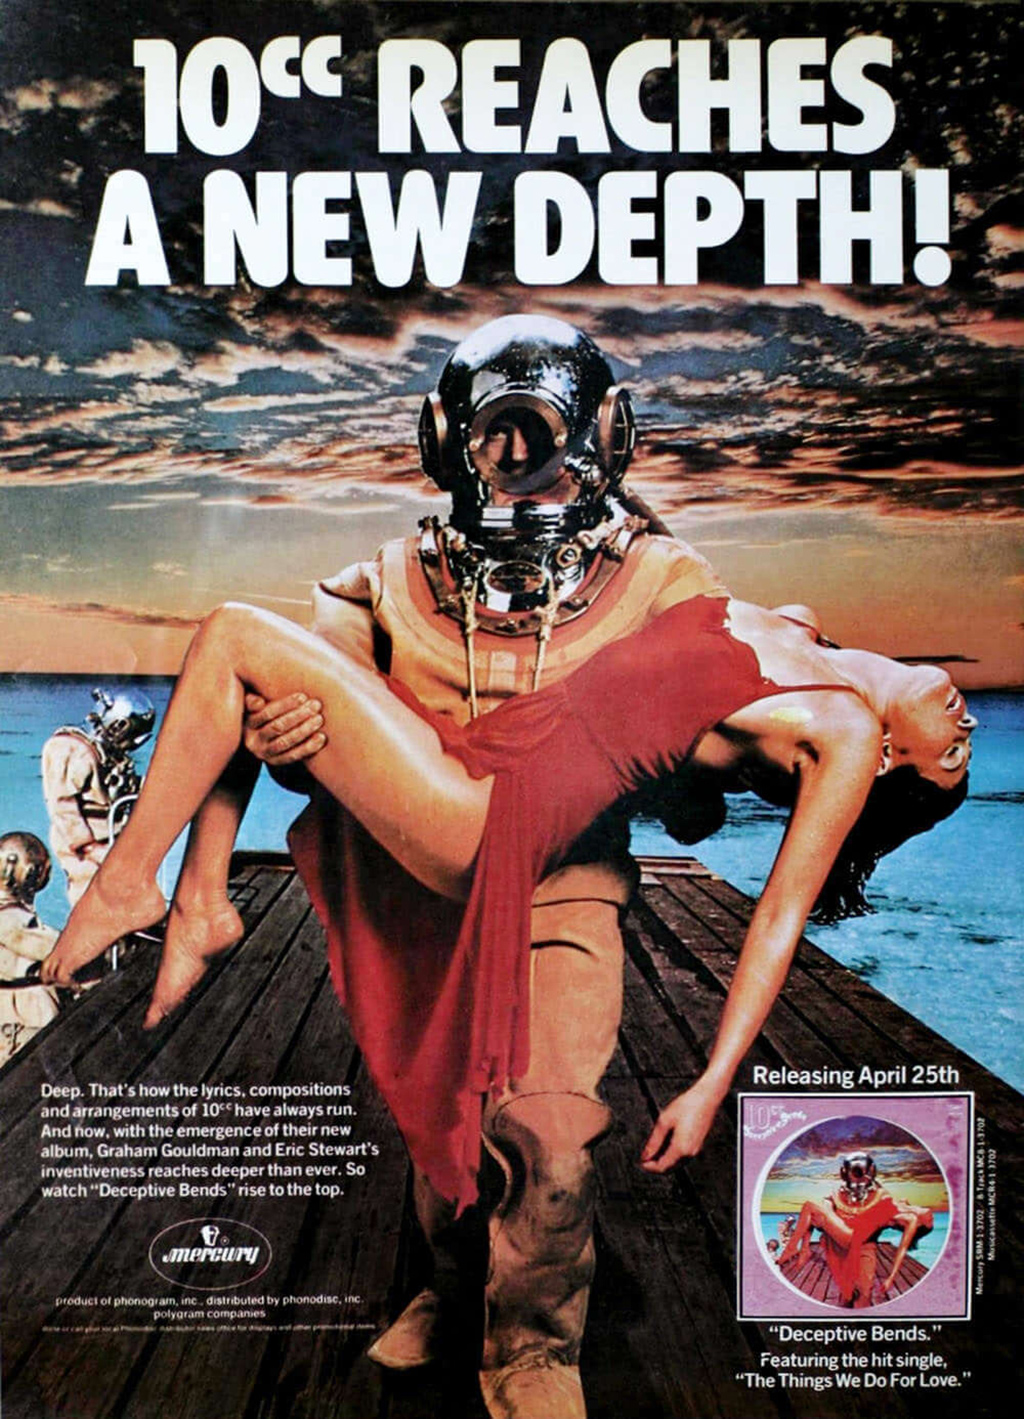 The ad campaign for 1977's Deceptive Bends made no mention of Godly & Crème having left